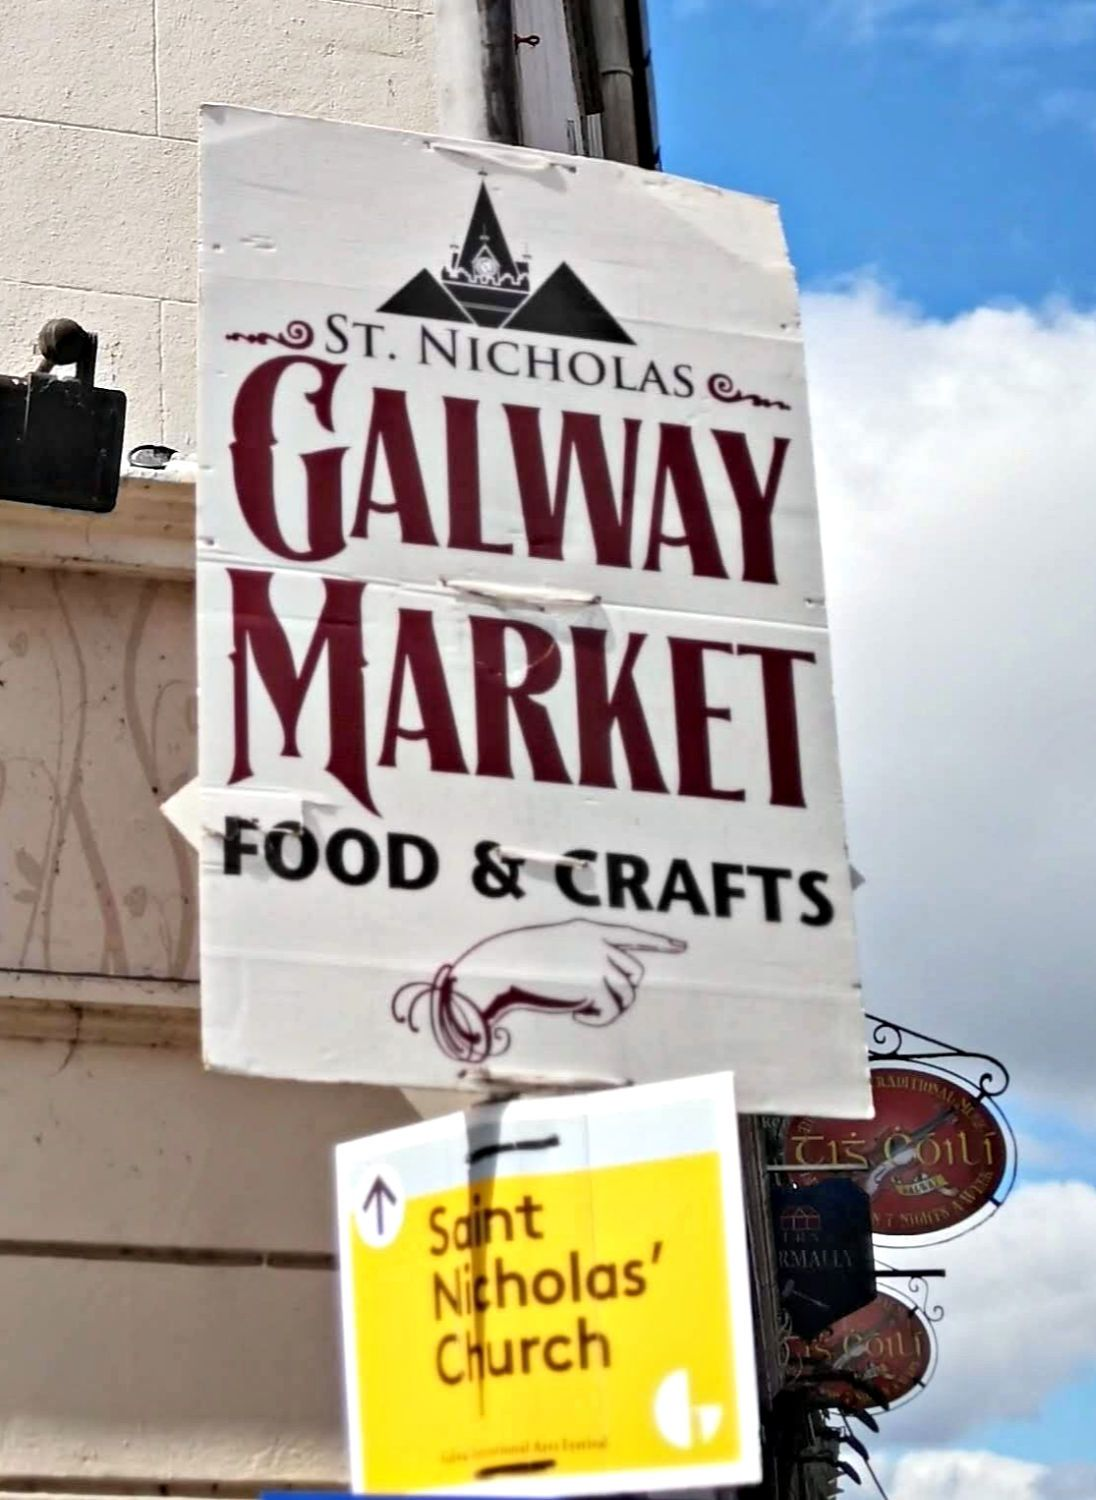 Food, fresh fish, fairies and lots more at the Galway market.